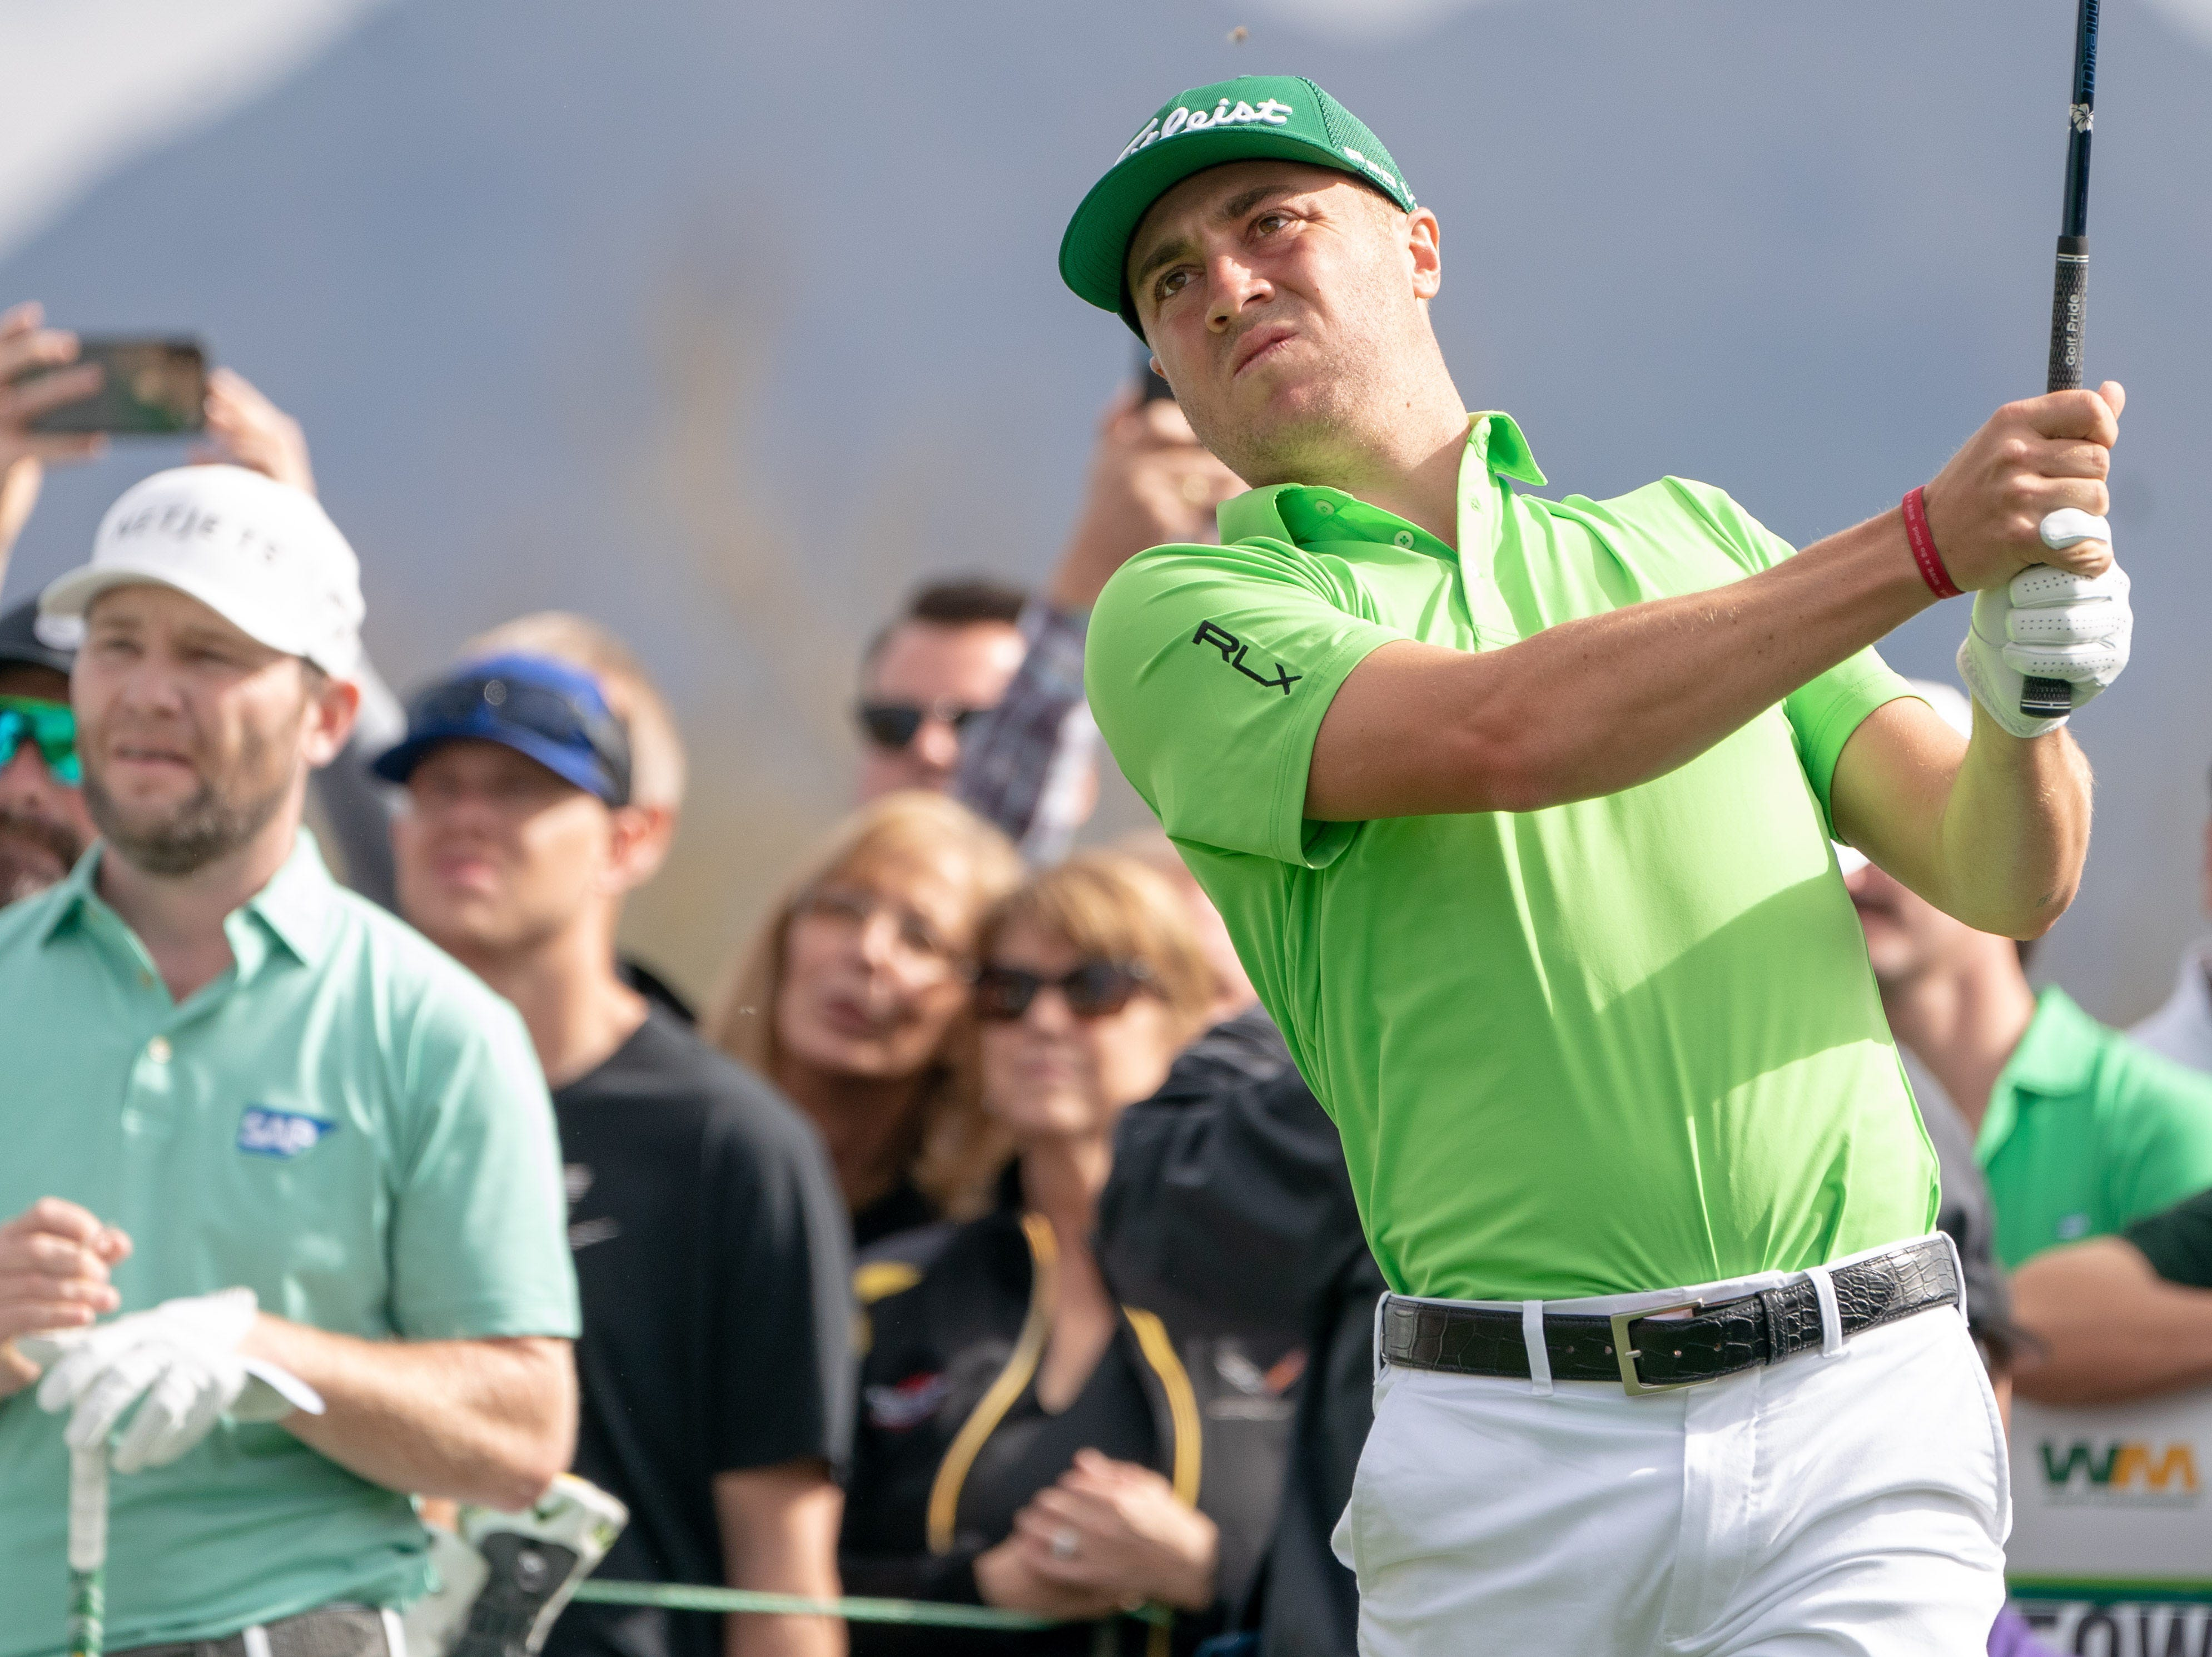 Feb 2, 2019; Scottsdale, AZ, USA; Justin Thomas with his tee shot on the 3rd during the third round of the Waste Management Phoenix Open golf tournament at TPC Scottsdale. Mandatory Credit: Allan Henry-USA TODAY Sports